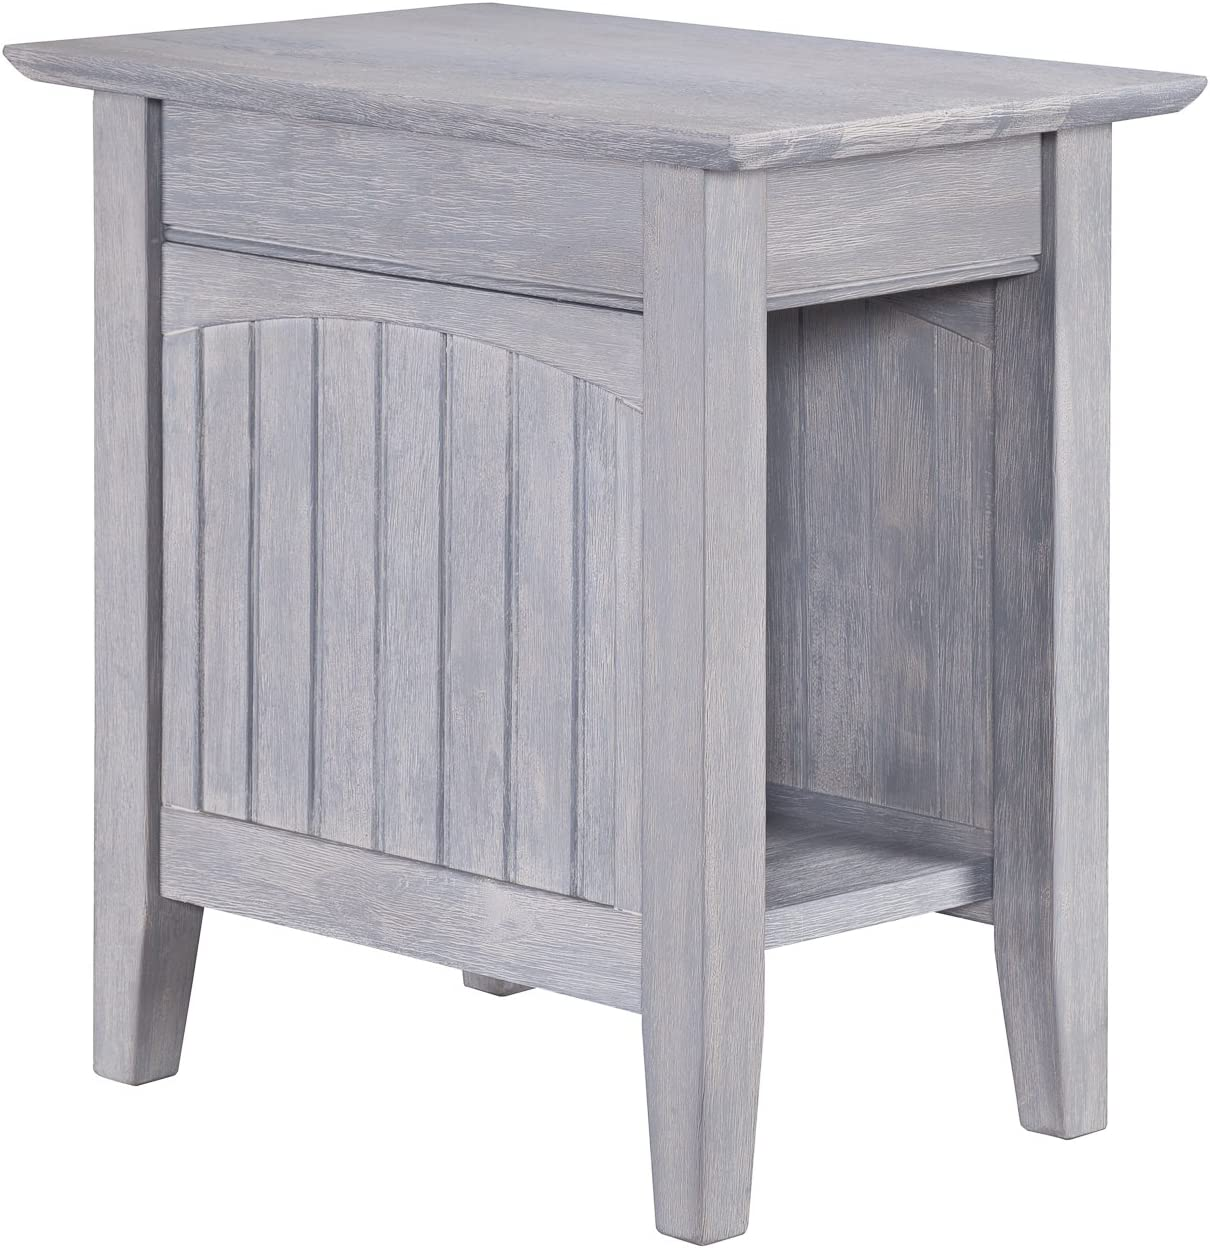 Atlantic Furniture Nantucket Chair Side Table, Driftwood